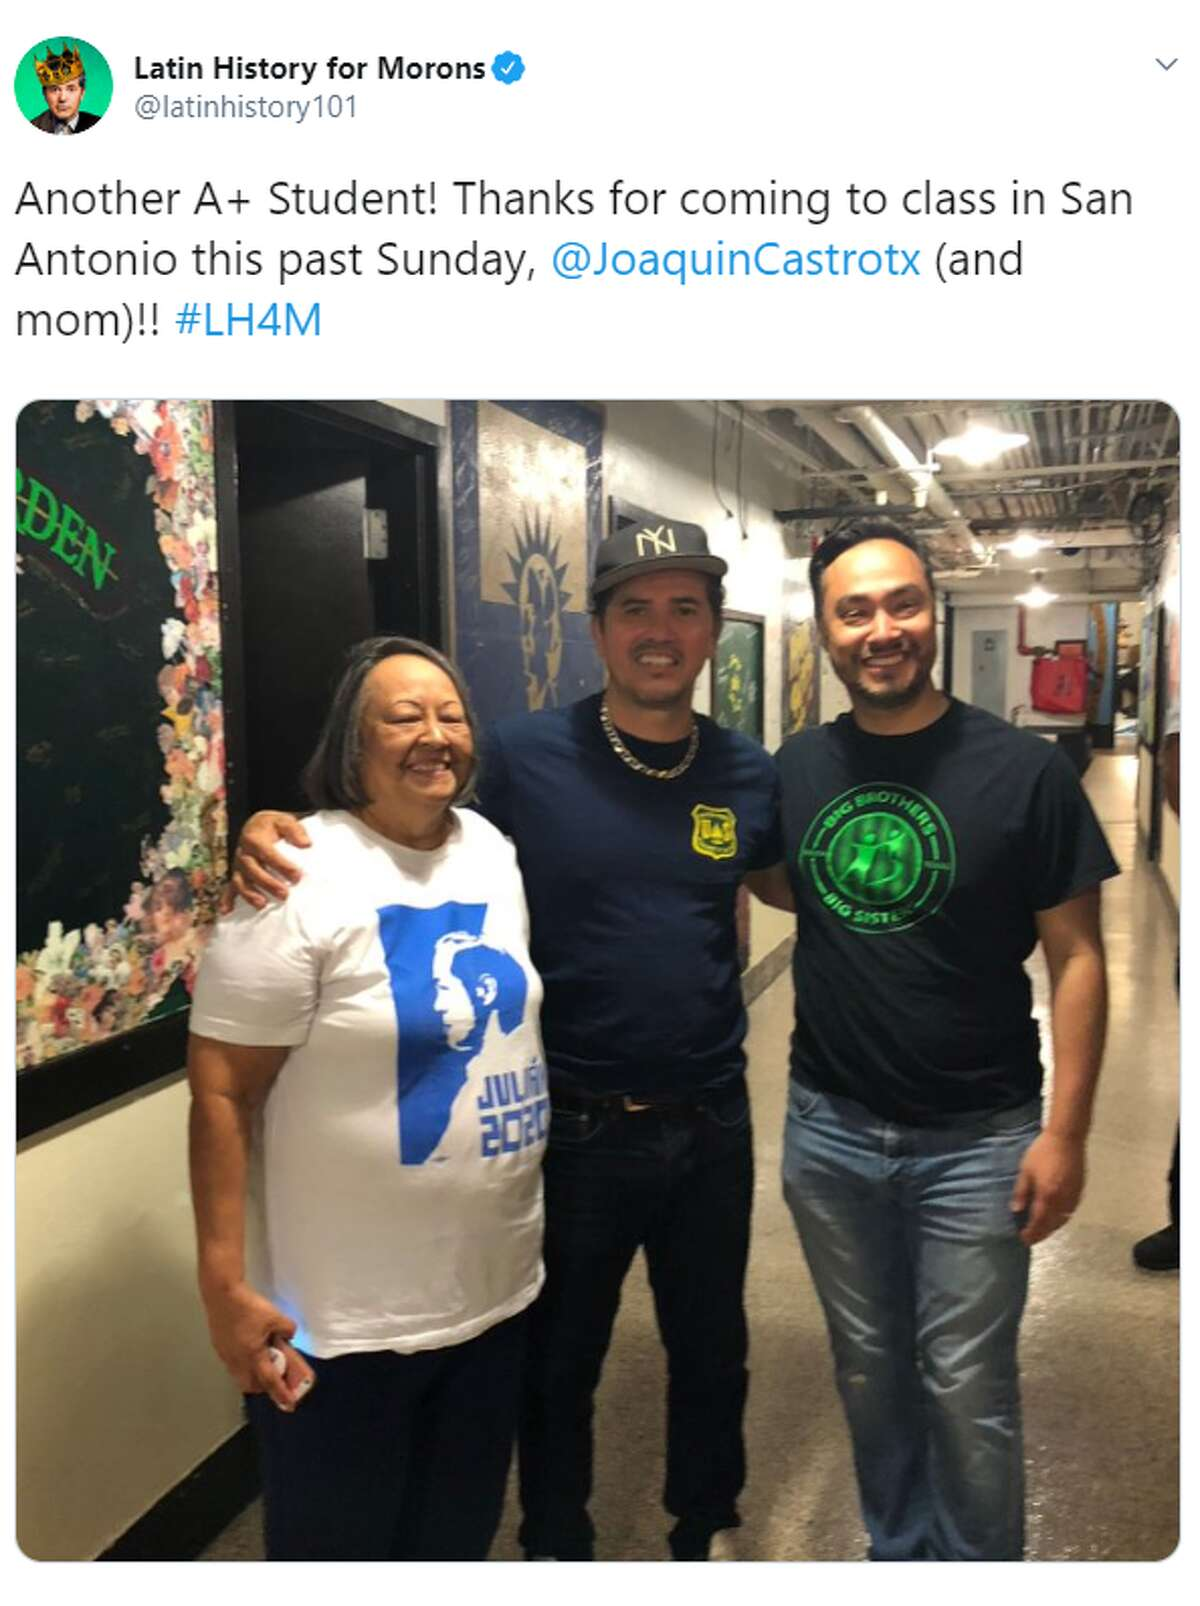 """The official Twitter account for John Leguizamo's """"Latin History for Morons"""" shared a photo of the actor with Joaquin and Rosie Castro, saying """"Another A+ Student! Thanks for coming to class in San Antonio this past Sunday, @JoaquinCastrotx (and mom)!!"""""""